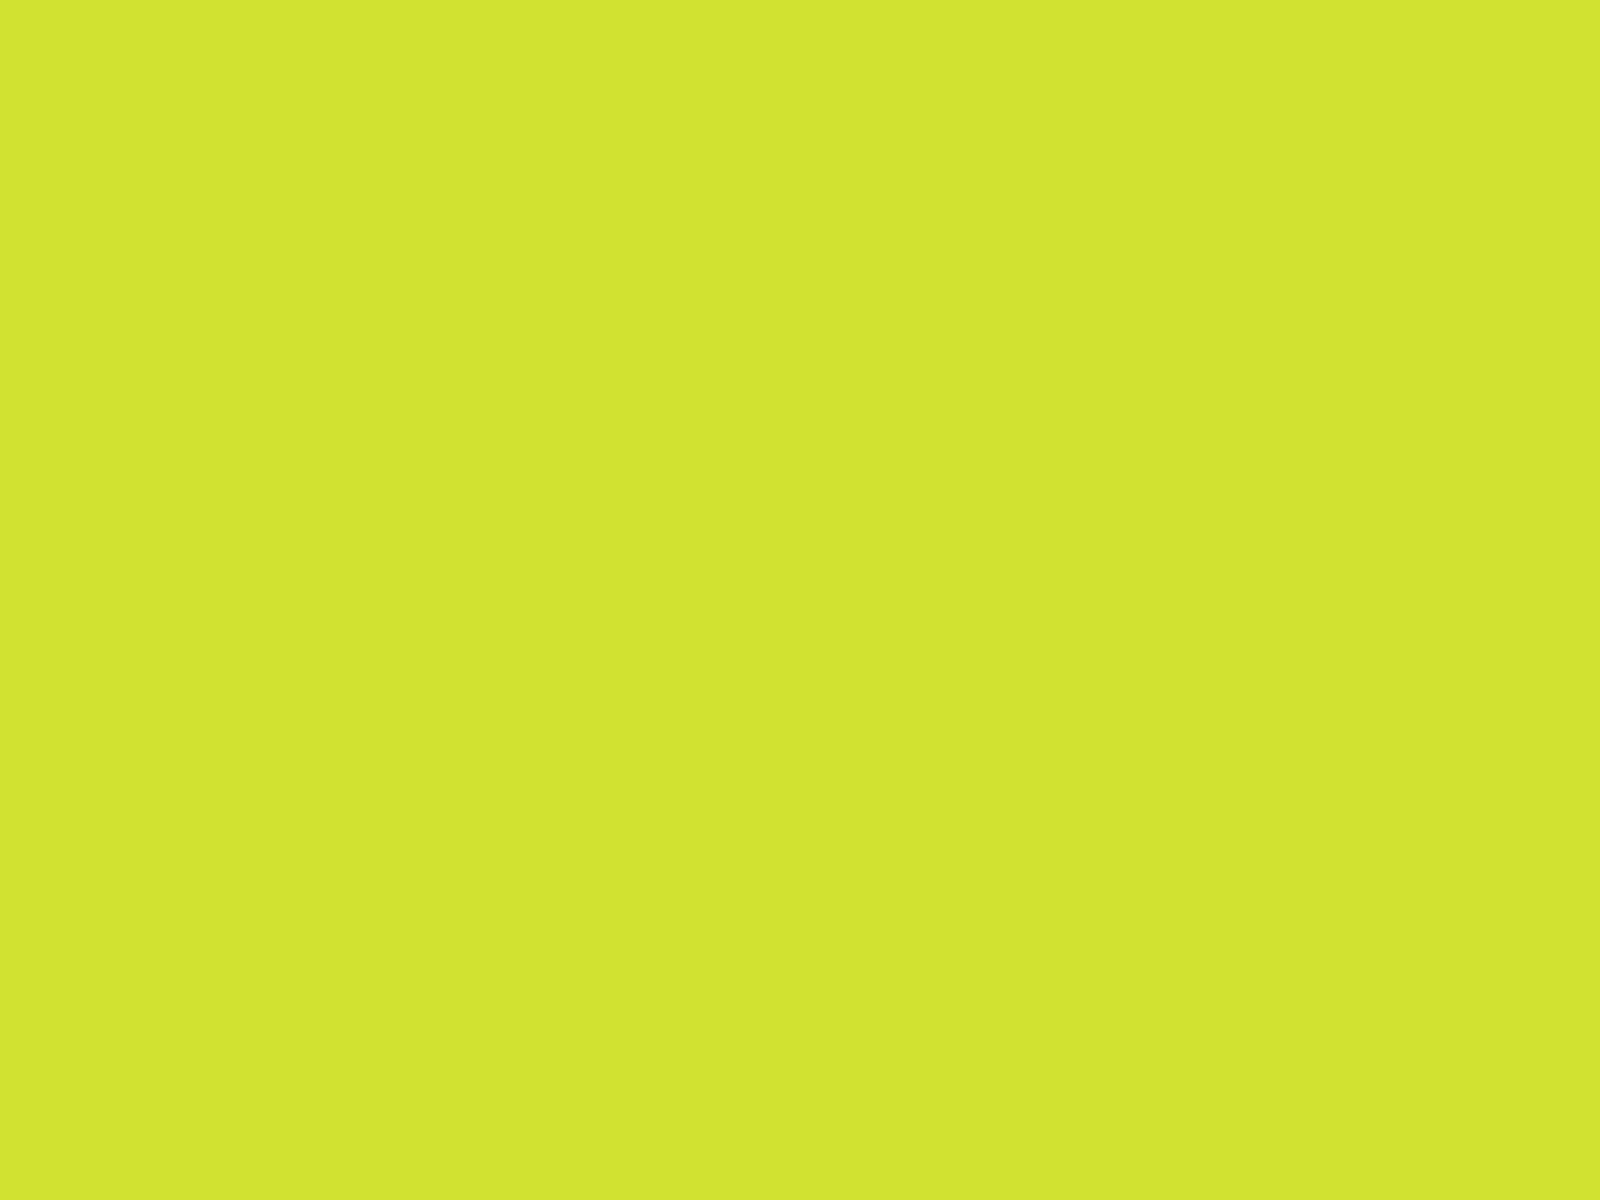 1600x1200 Pear Solid Color Background